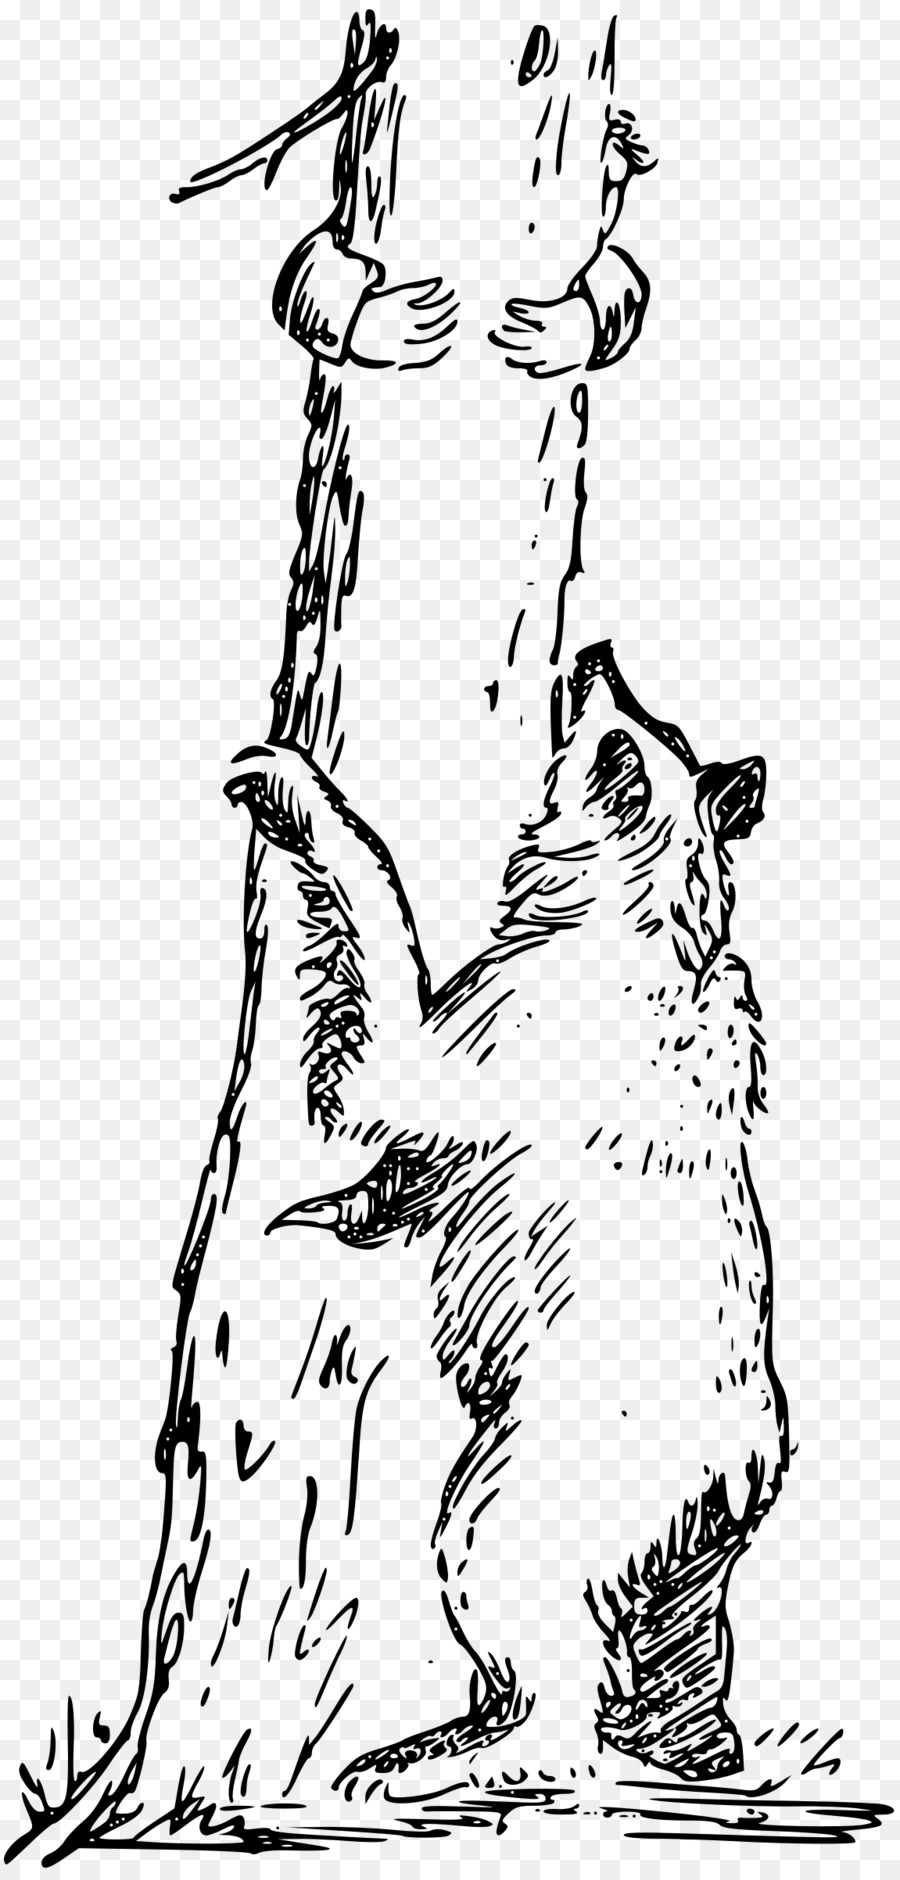 Bear in a tree clipart royalty free stock Black Line Background clipart - Bear, Climbing, Drawing, transparent ... royalty free stock